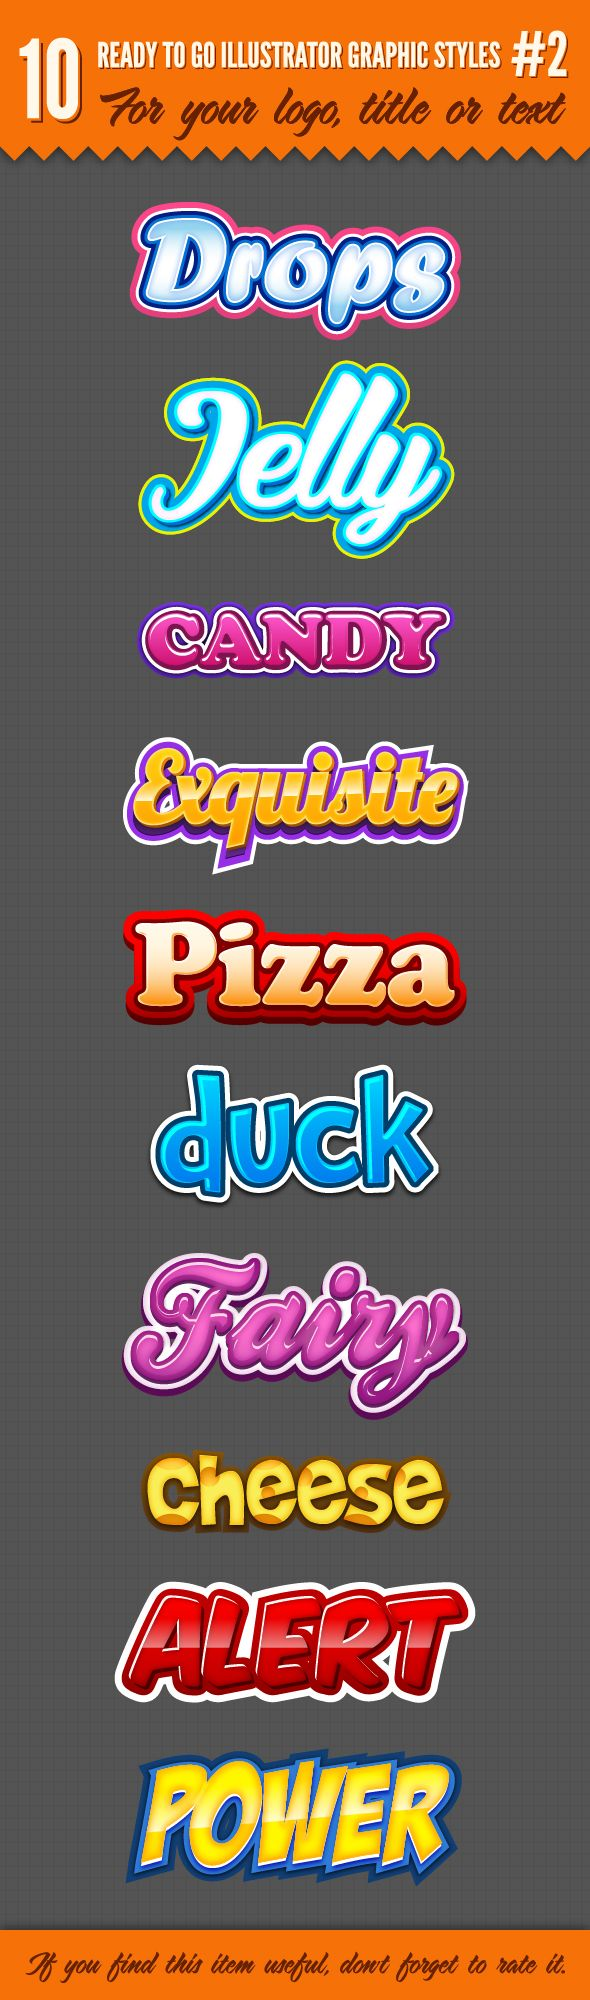 10 Logo Graphic Styles #2 by GraphicDelivery.deviantart.com on @deviantART